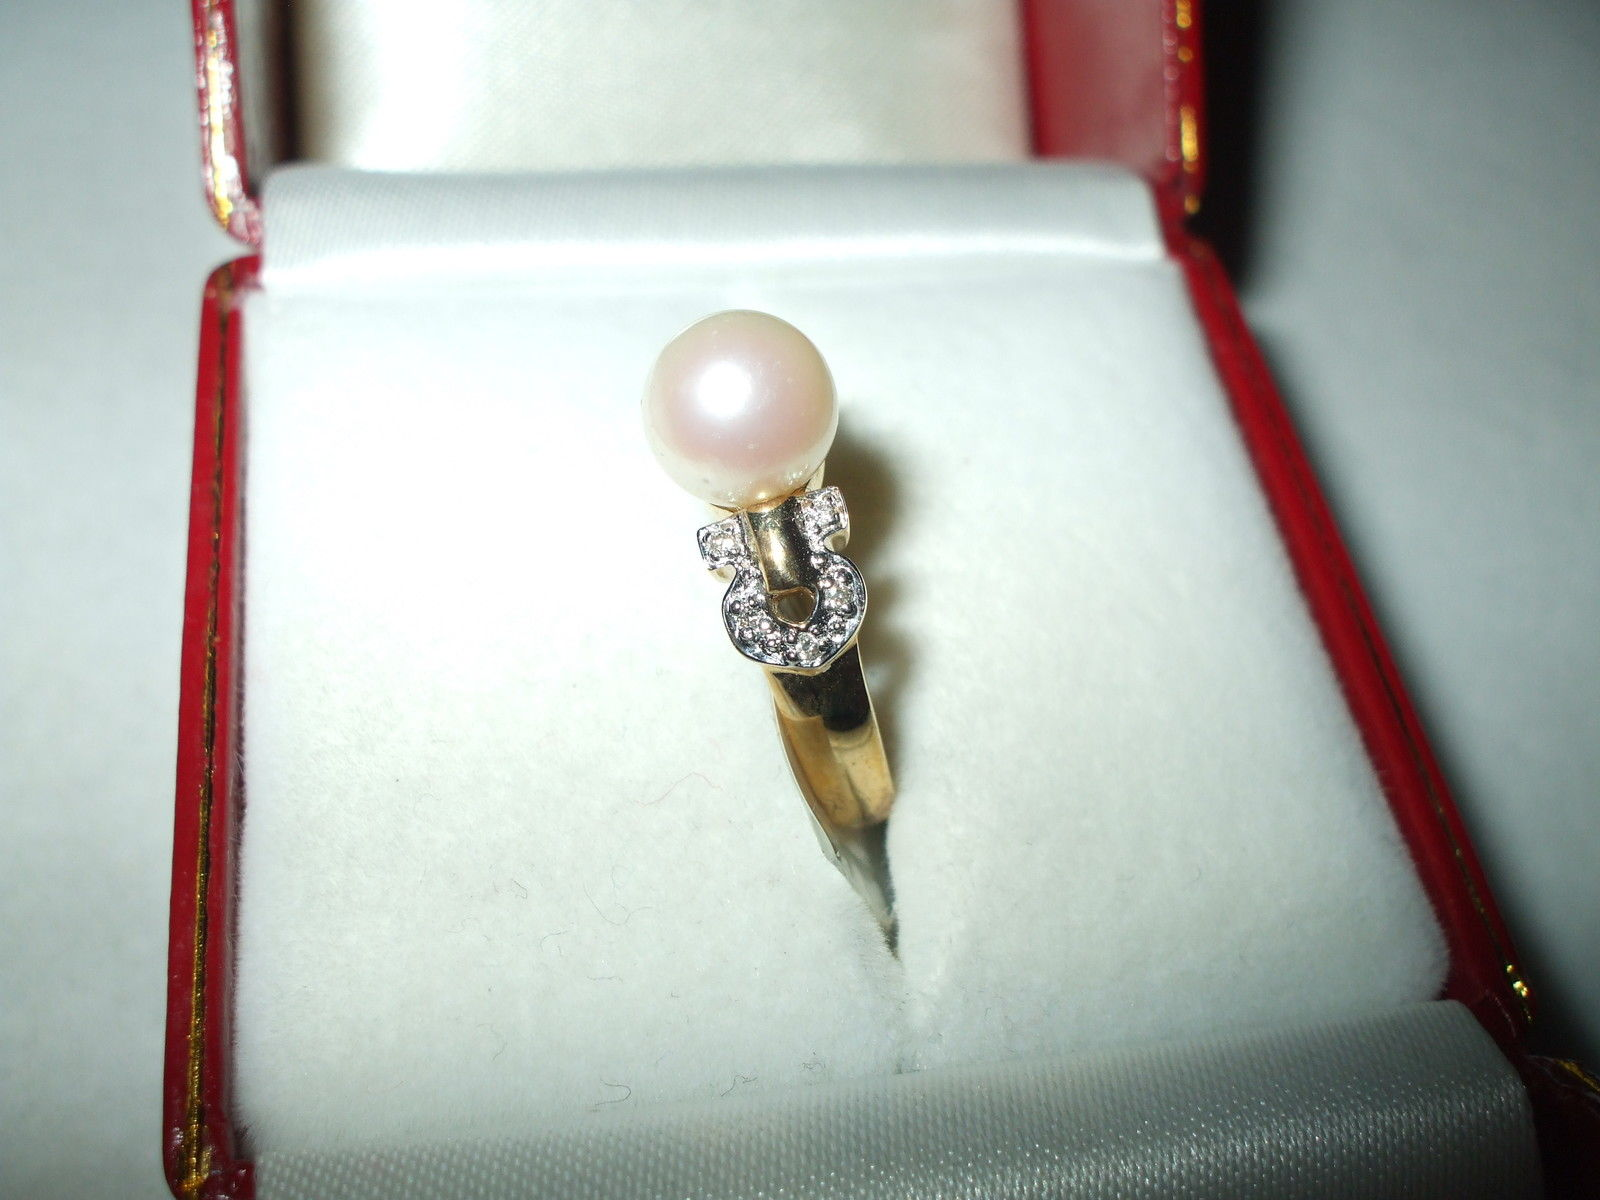 Pearl & Diamond Ring 14K yellow gold $520 NWT